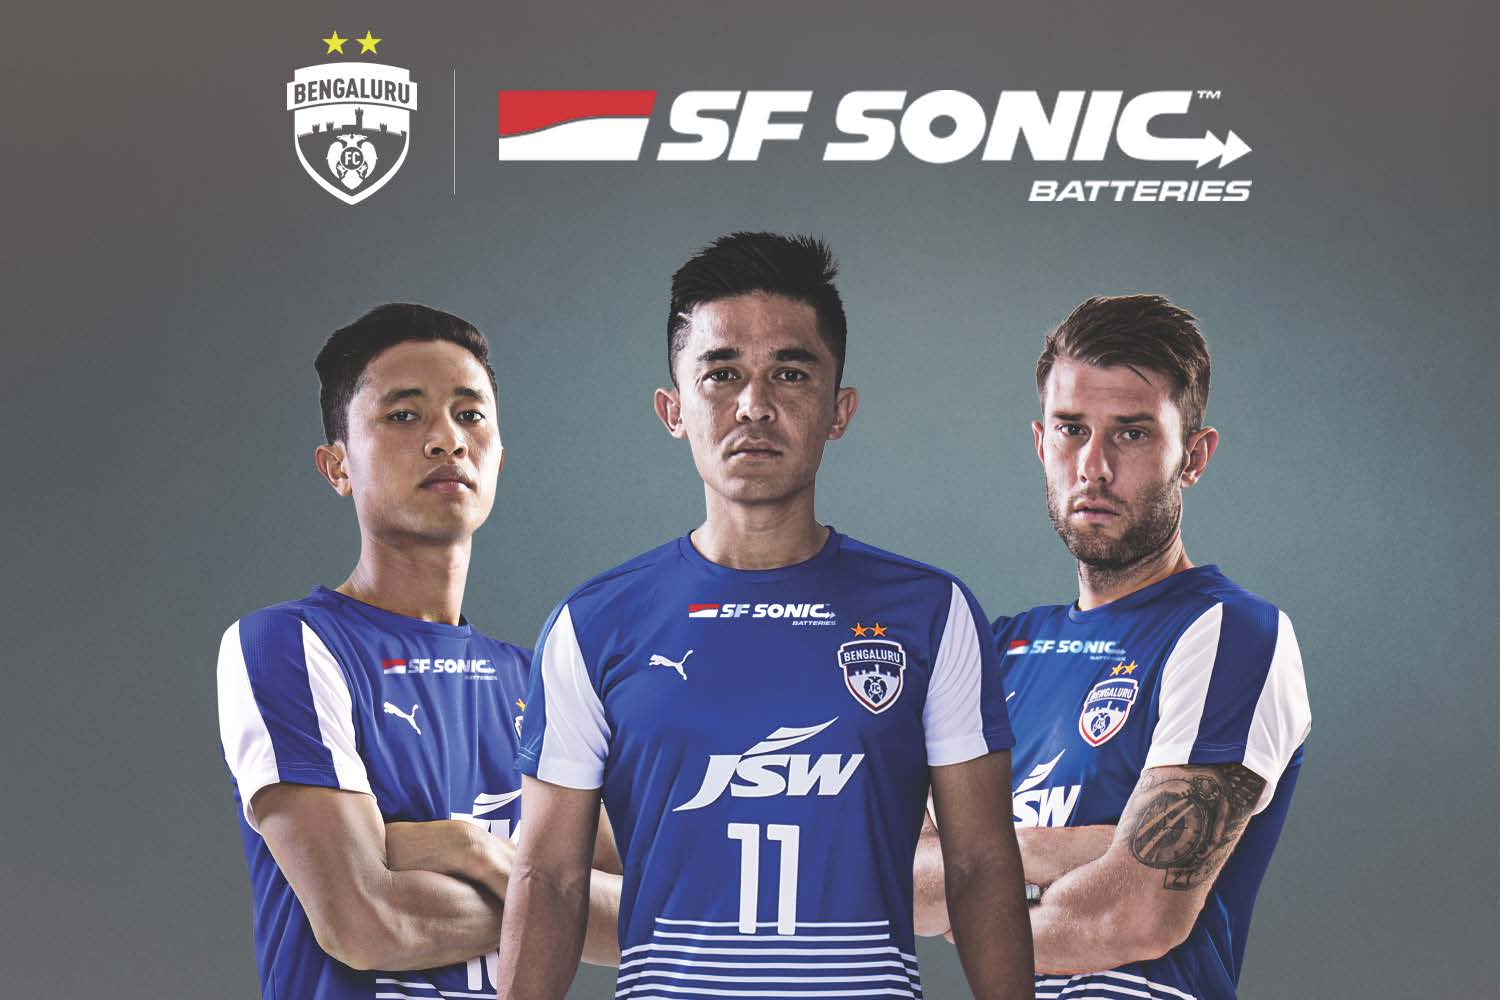 SF Sonic adds more Power to Bengaluru FC